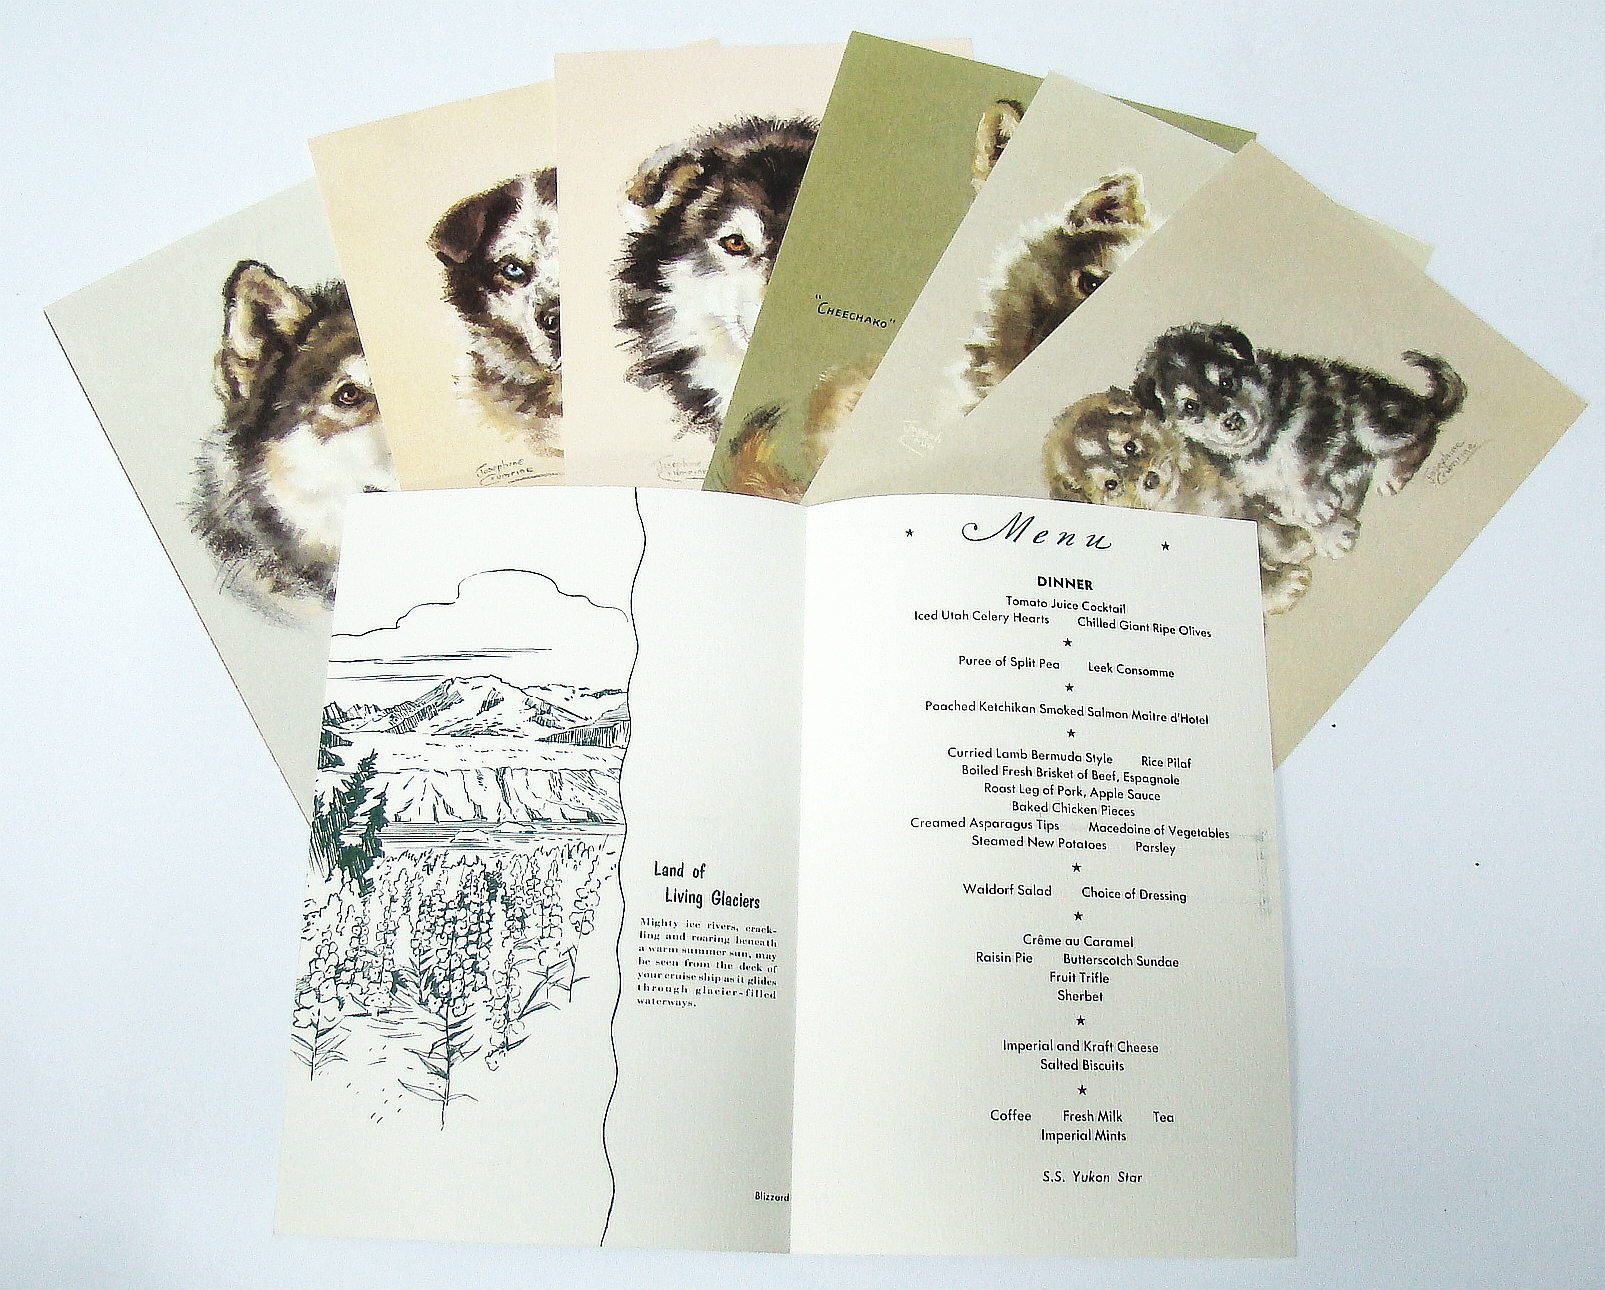 Image for Collection of Eight Cruise Menus, Circa 1940s, from the S.S. Yukon Star - Alaska Cruise Lines,  Featuring Dog Illustrations By Josephine Crumrine